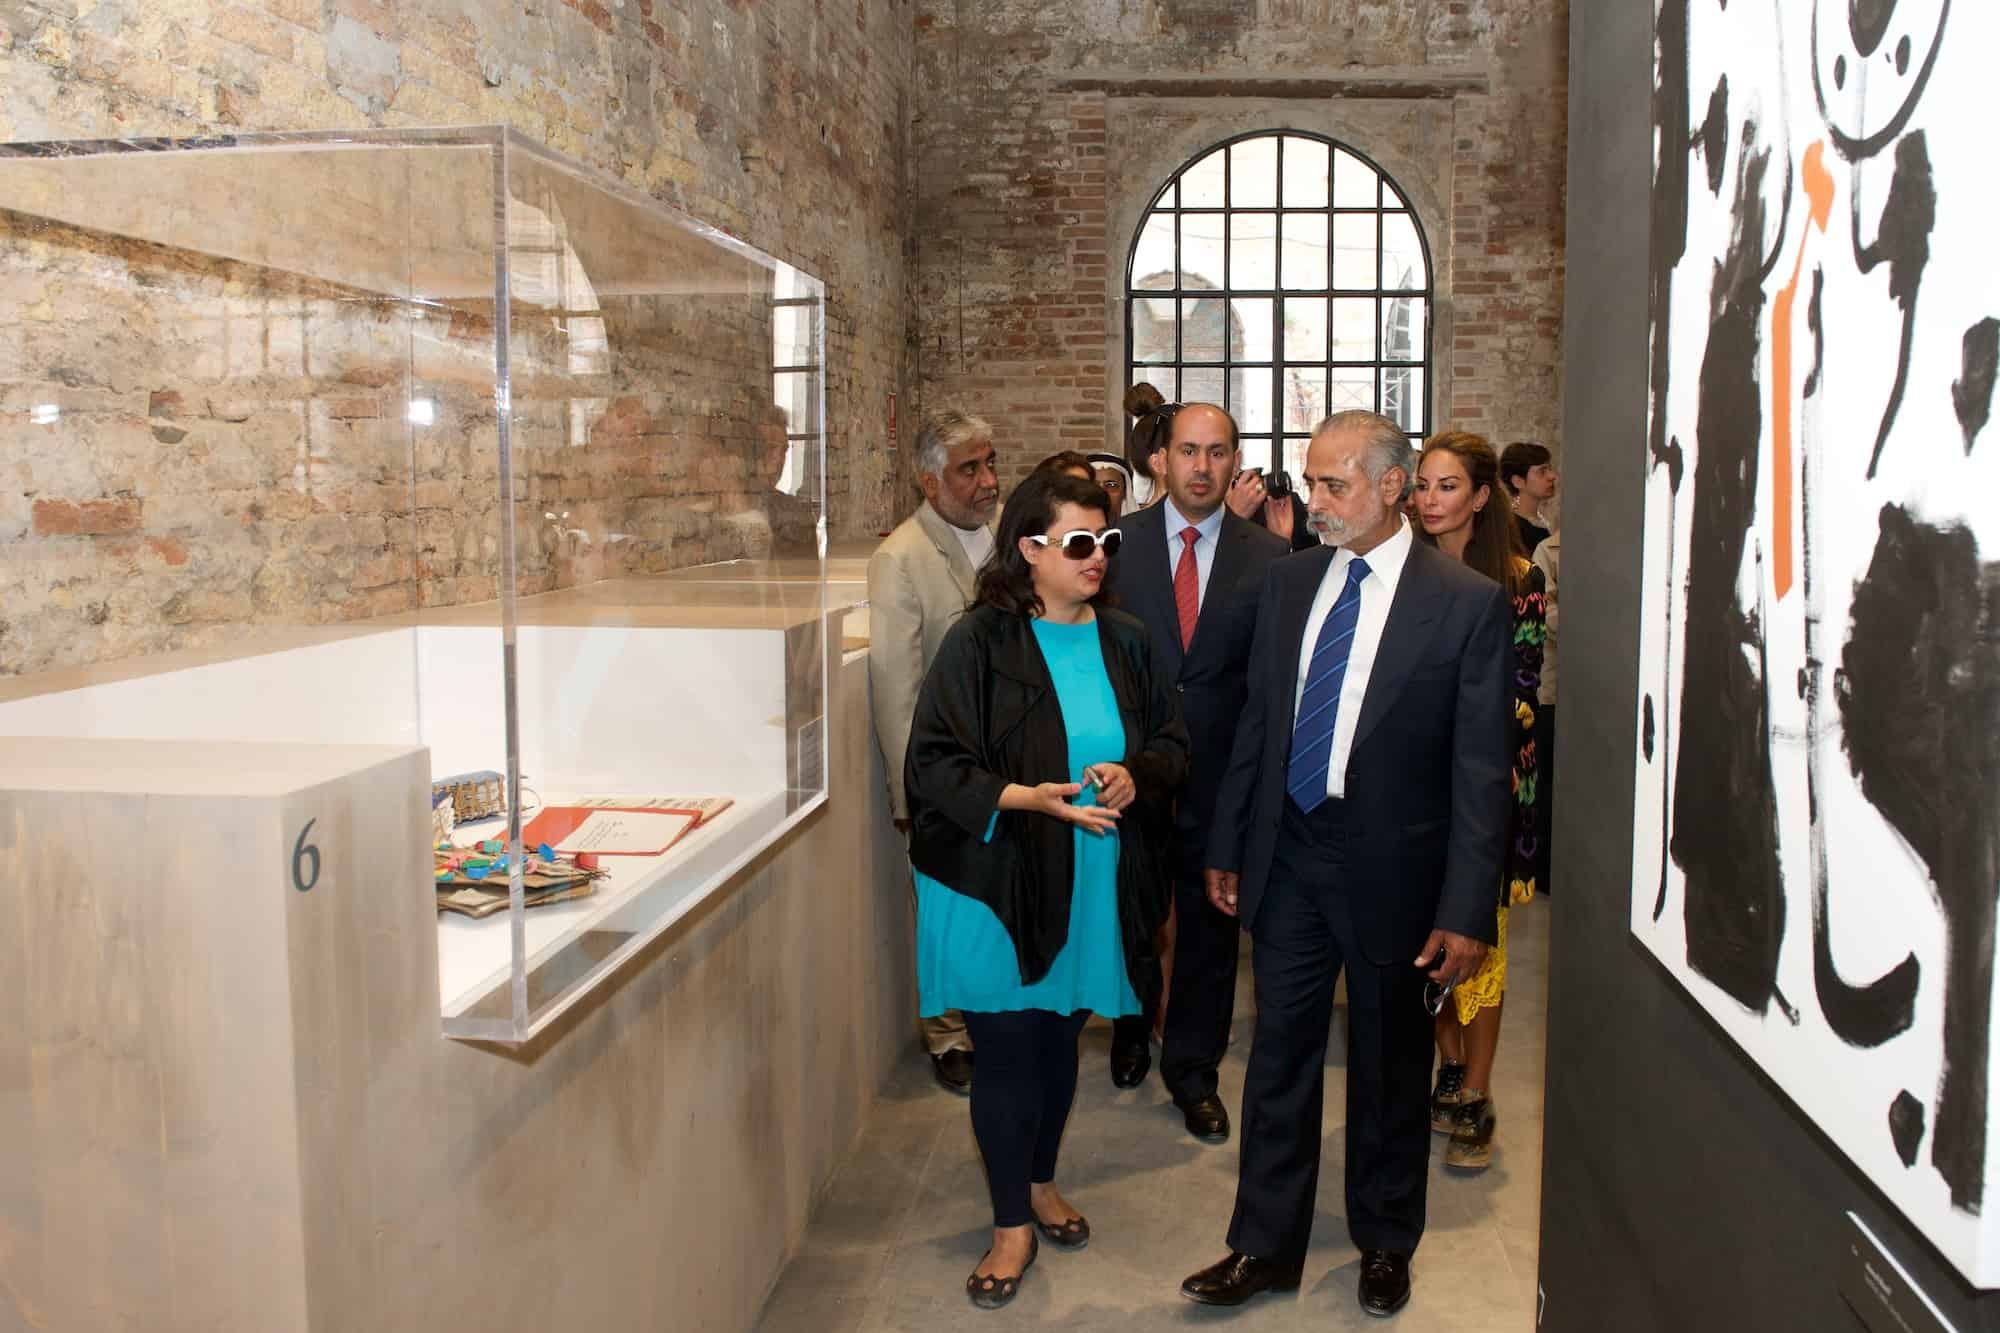 Sheikha Hoor Al Qasimi tours the exhibition with H.E Sheikh Nahayan Mabarak Al Nahayan, Minister of Culture, Youth and Community Development and H.E. Saqer Al Raisi, UAE Ambassador to Italy.